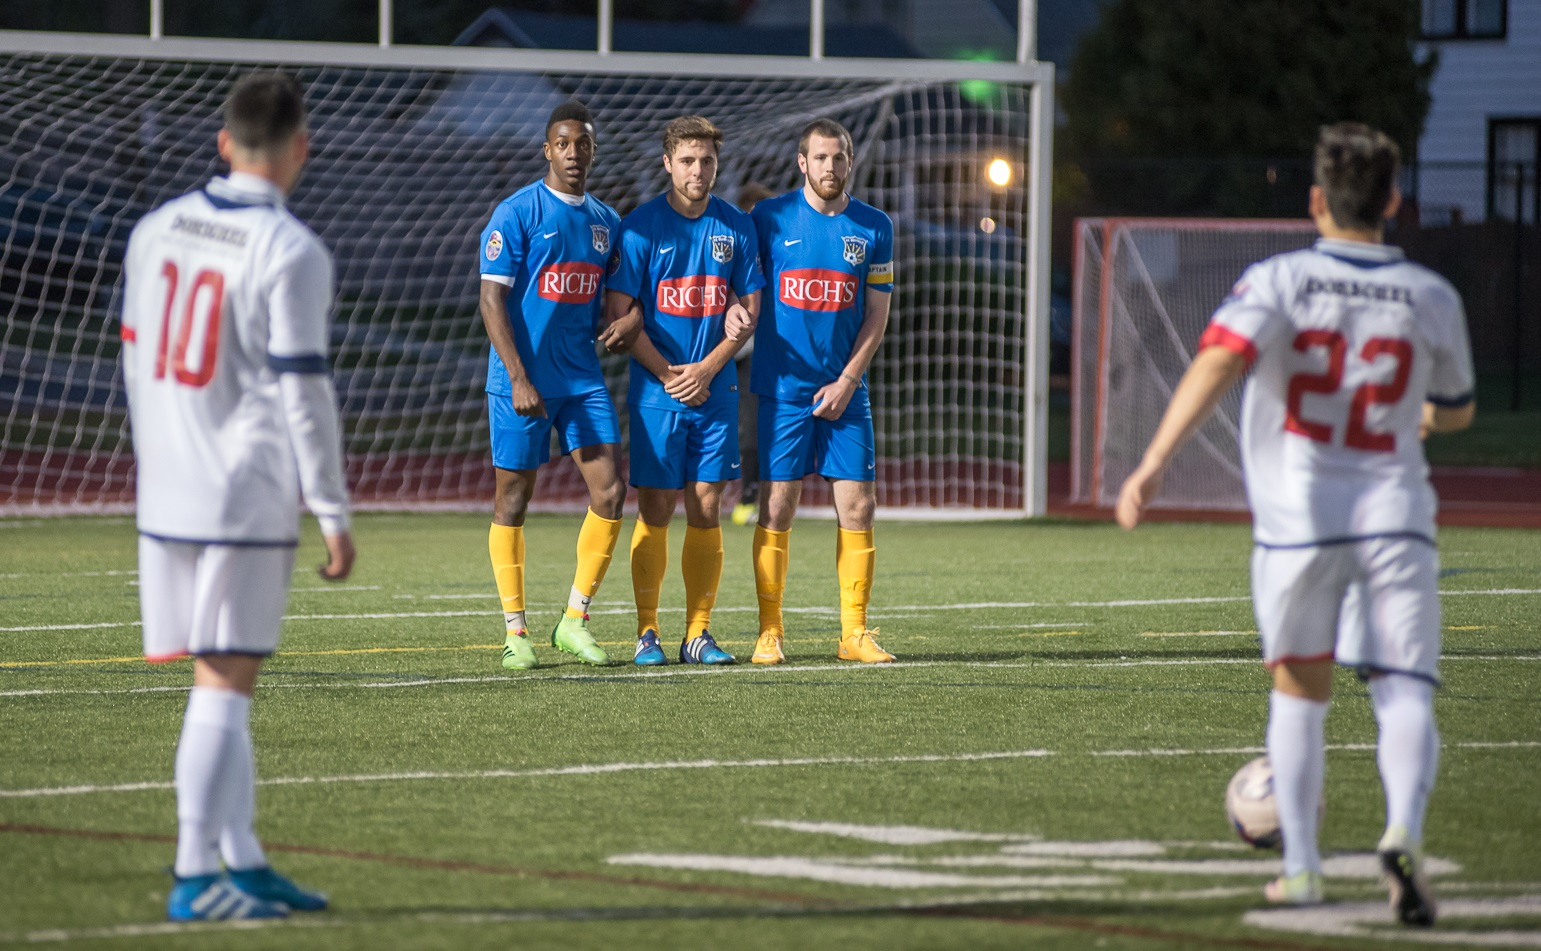 Isaiah Barrett, left in blue, eyes a Rochester free kick as part of FC Buffalo's wall. (Matt Weinberg/Special to The News)